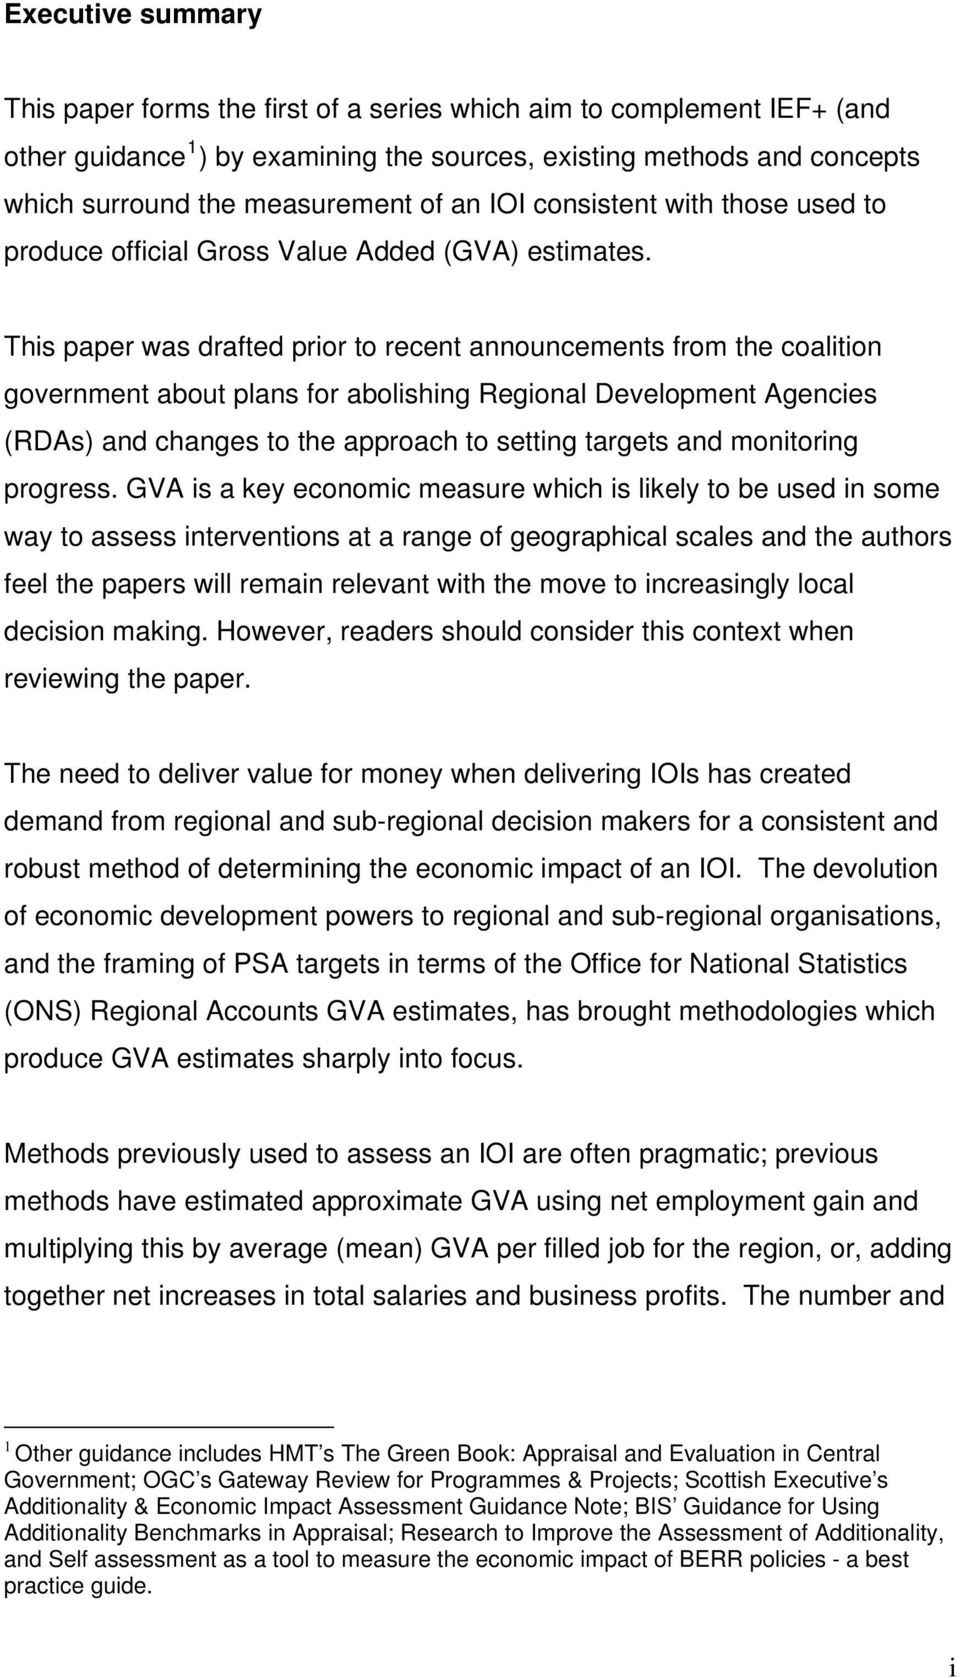 This paper was drafted prior to recent announcements from the coalition government about plans for abolishing Regional Development Agencies (RDAs) and changes to the approach to setting targets and